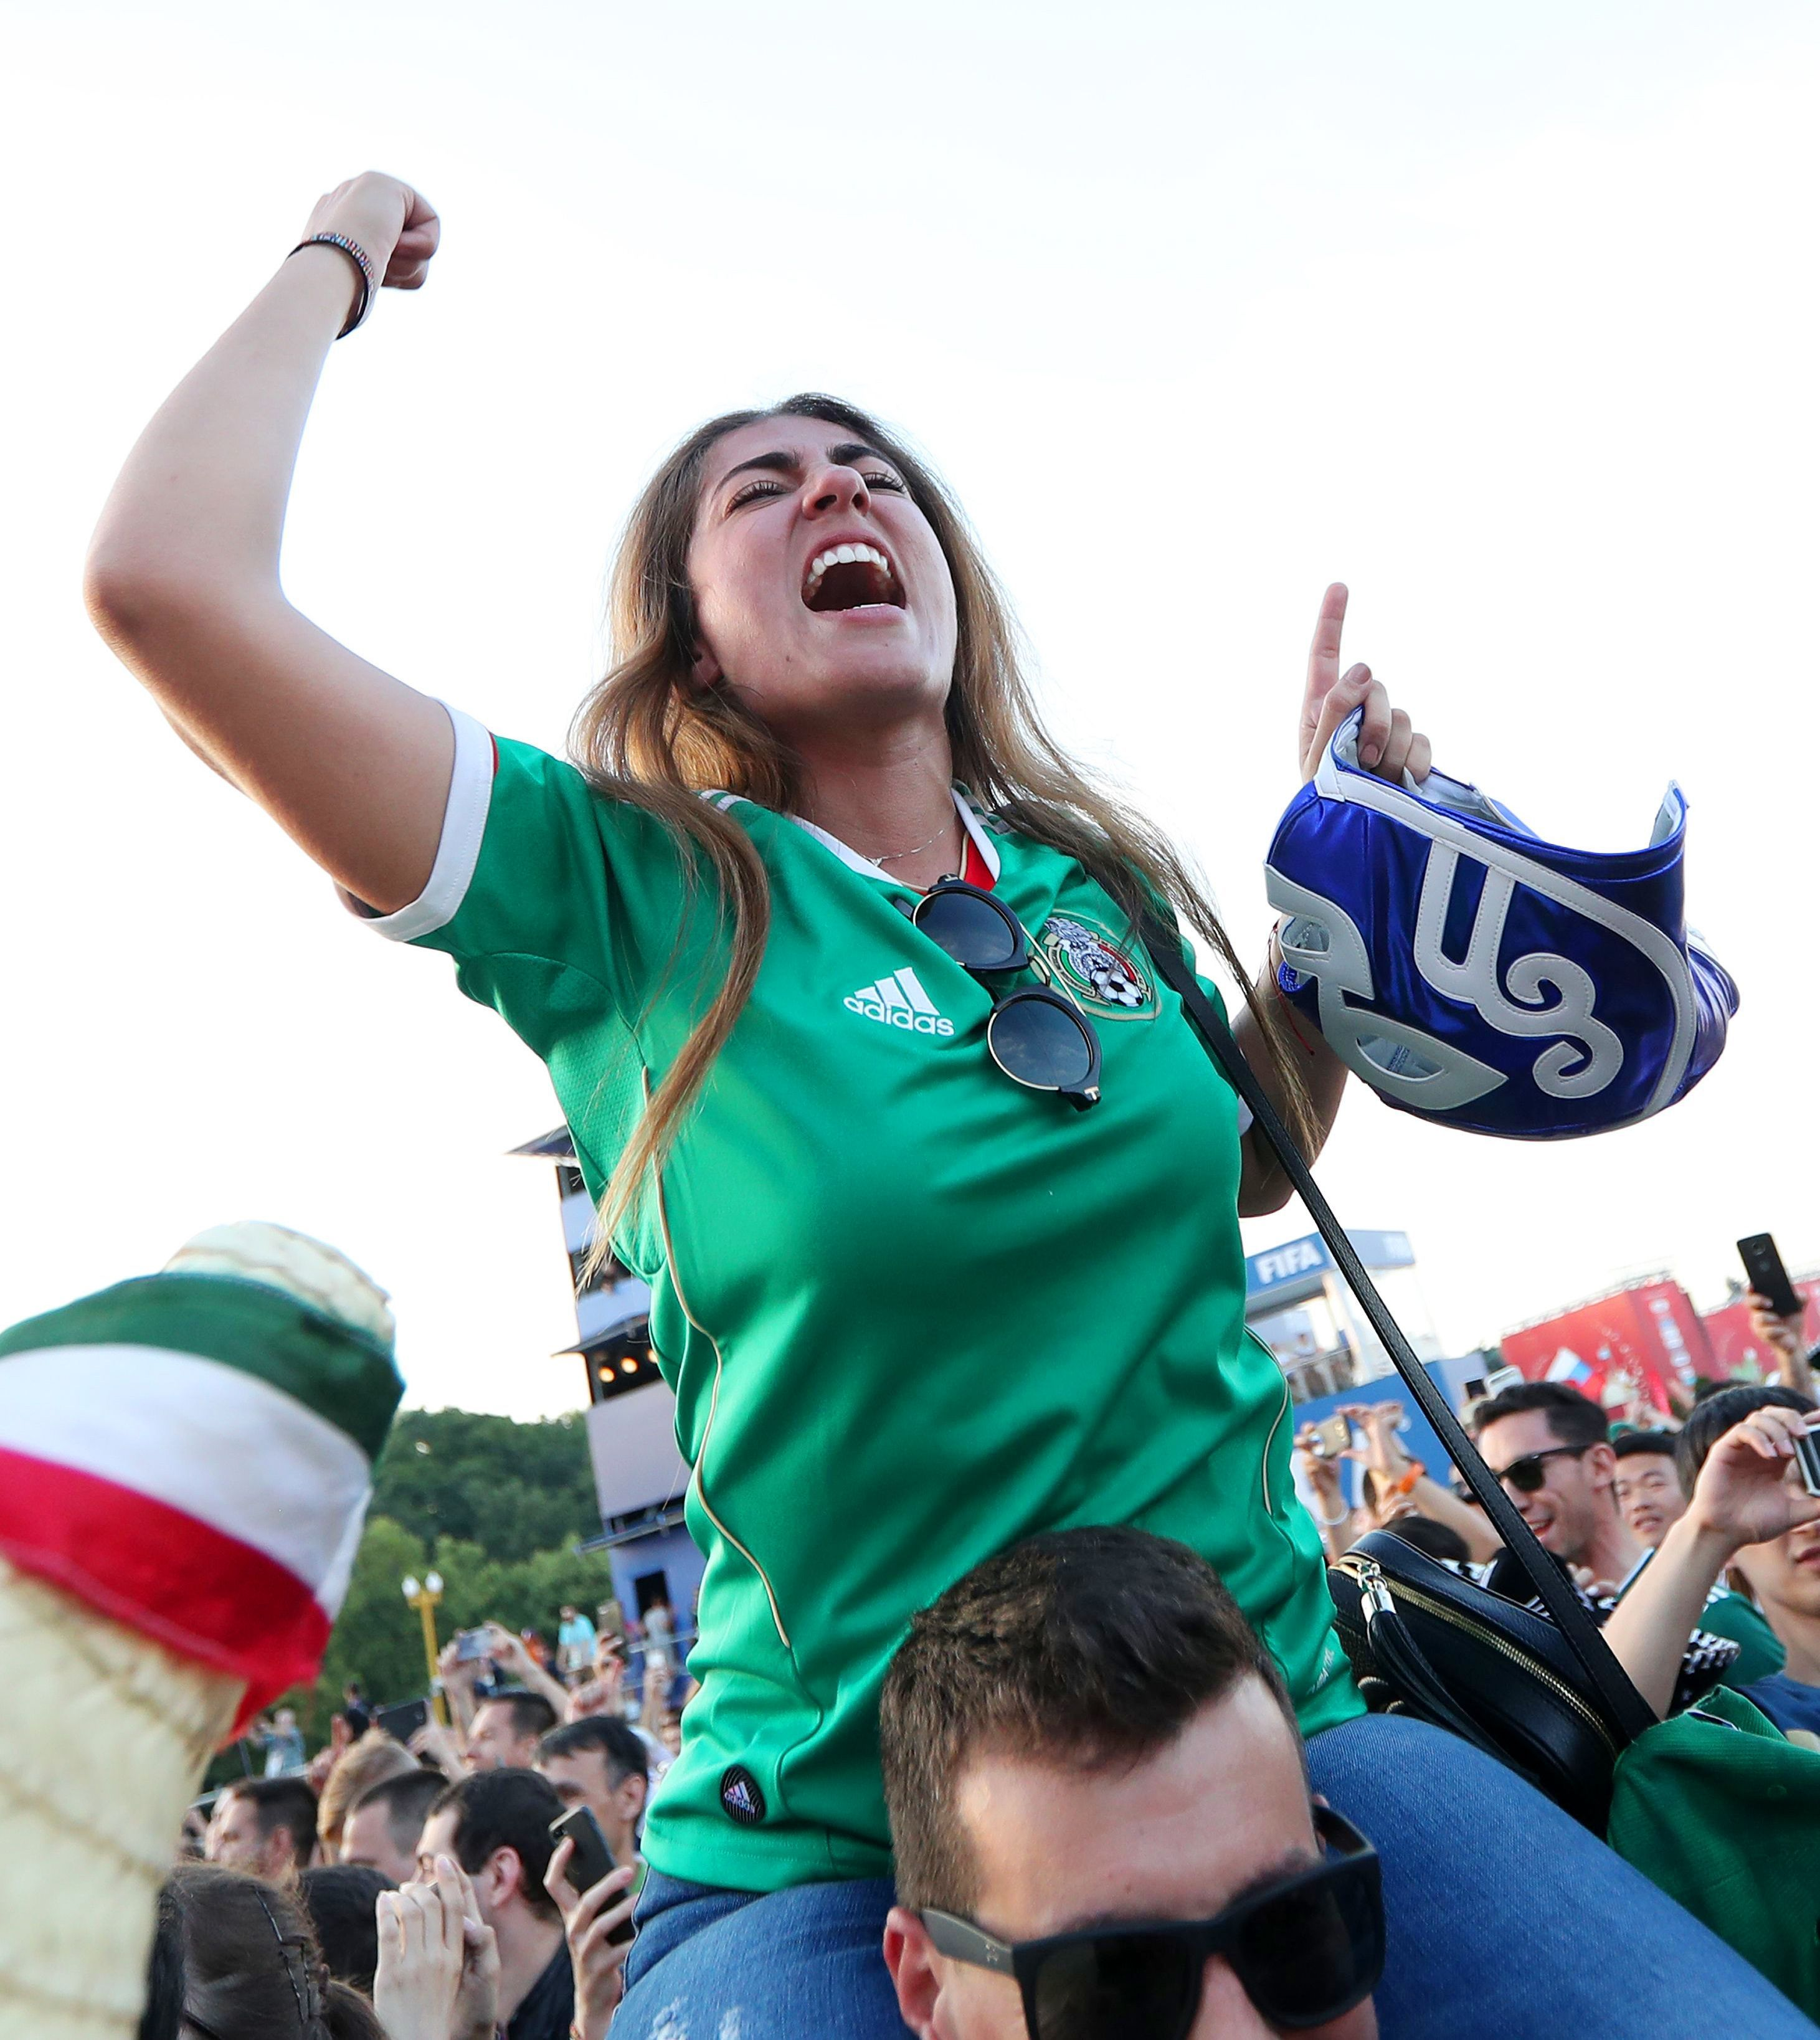 Moscow belonged to Mexico on Sunday as thousands flooded the streets.